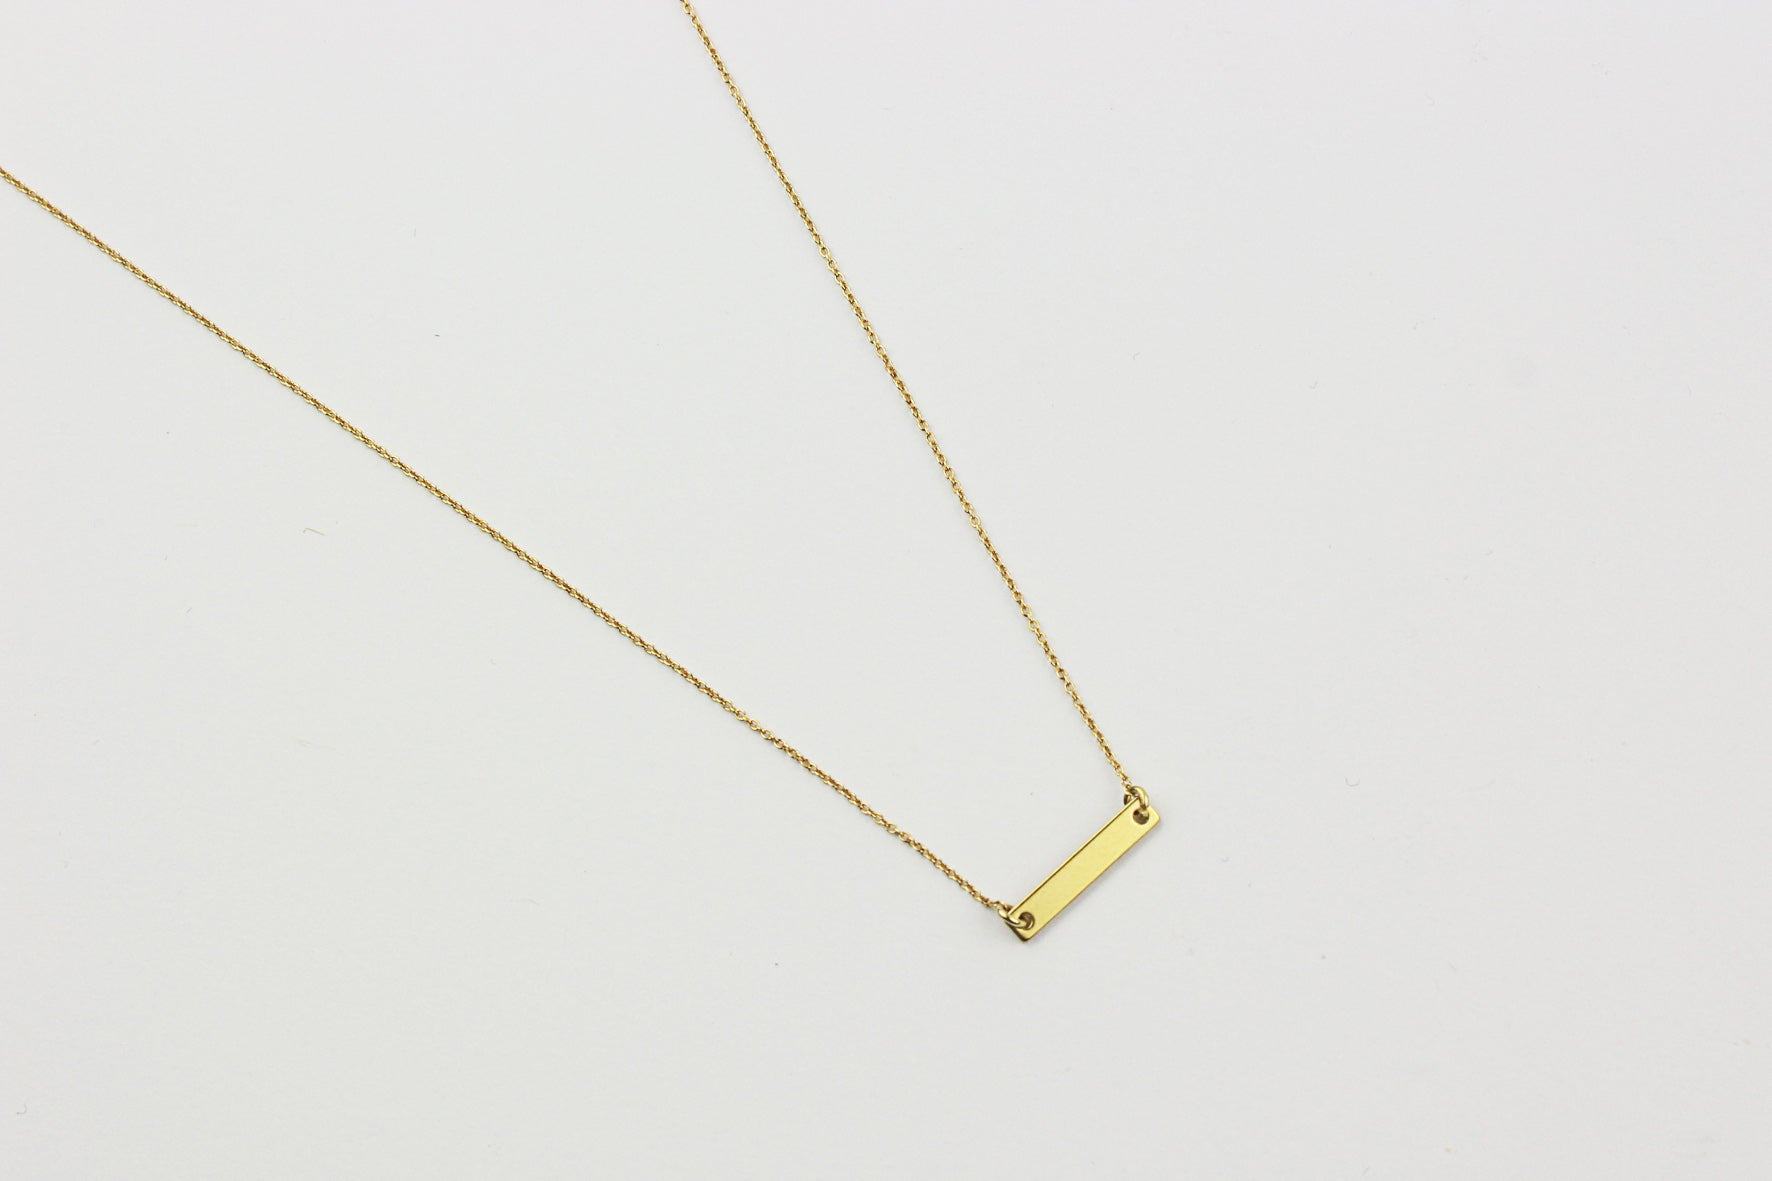 ....Kette SMALL BAR FRAMED Sterling Silber vergoldet..Necklace SMALL BAR FRAMED Sterling Silver gold plated....